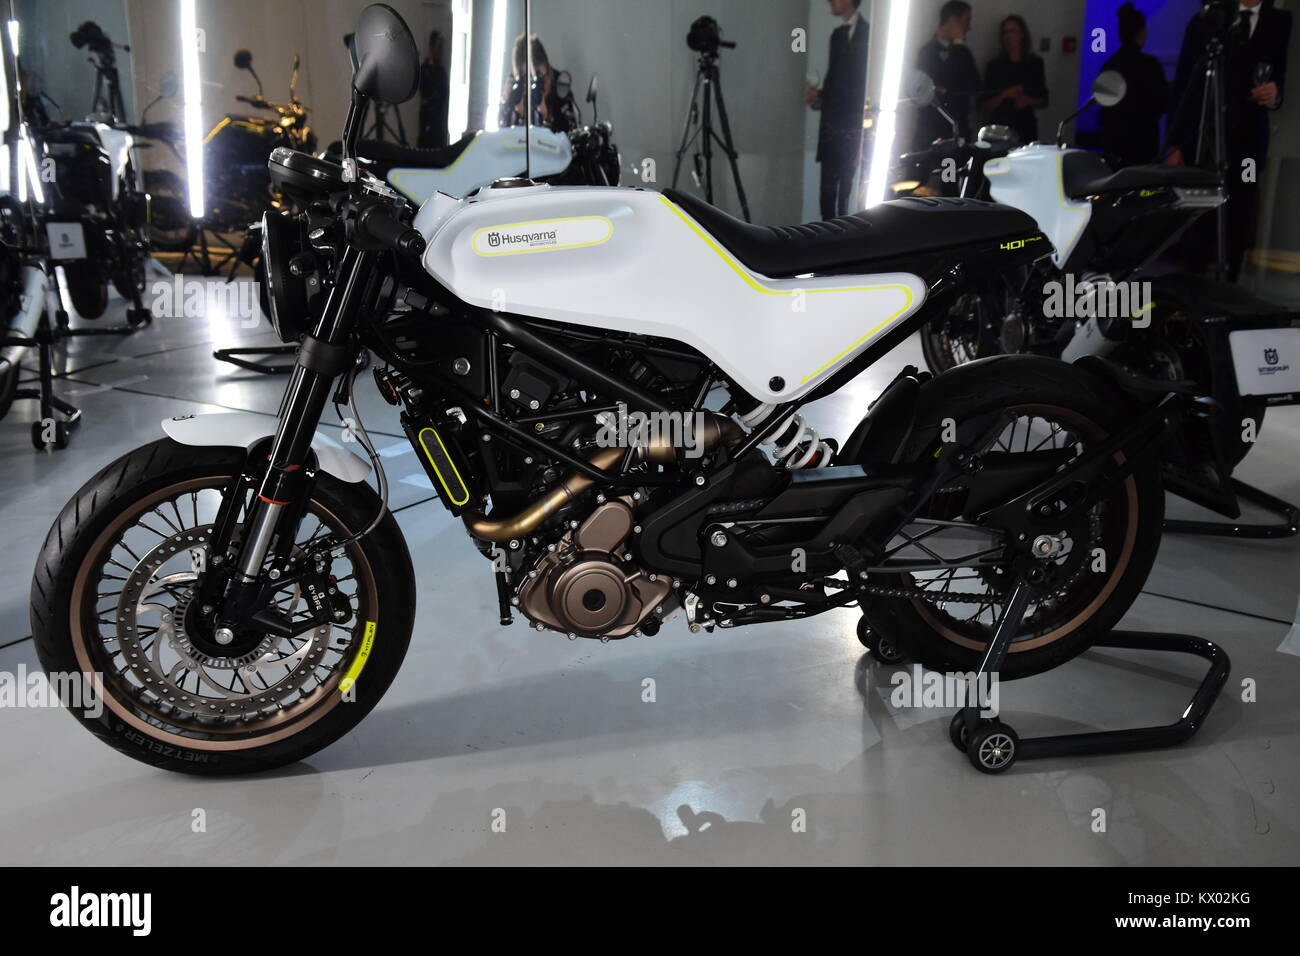 Husqvarna launches new motorcycle range in London  Featuring: Atmosphere Where: London, United Kingdom When: 05 - Stock Image